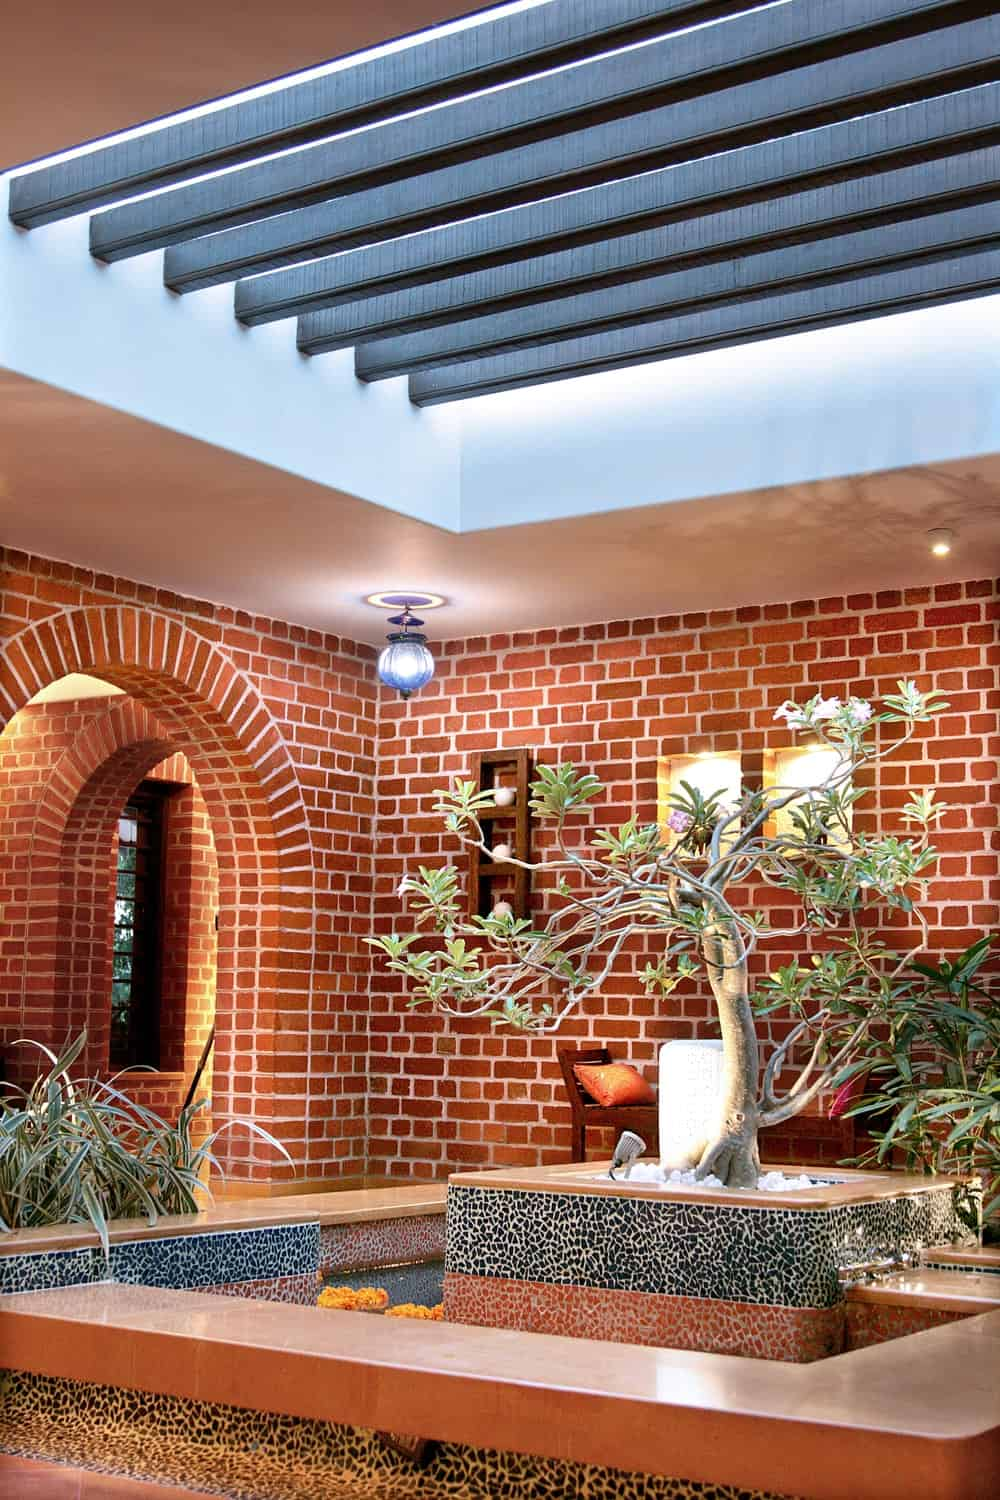 This area is also landscaped with a fountain adorned with a skylight that has trellises above.